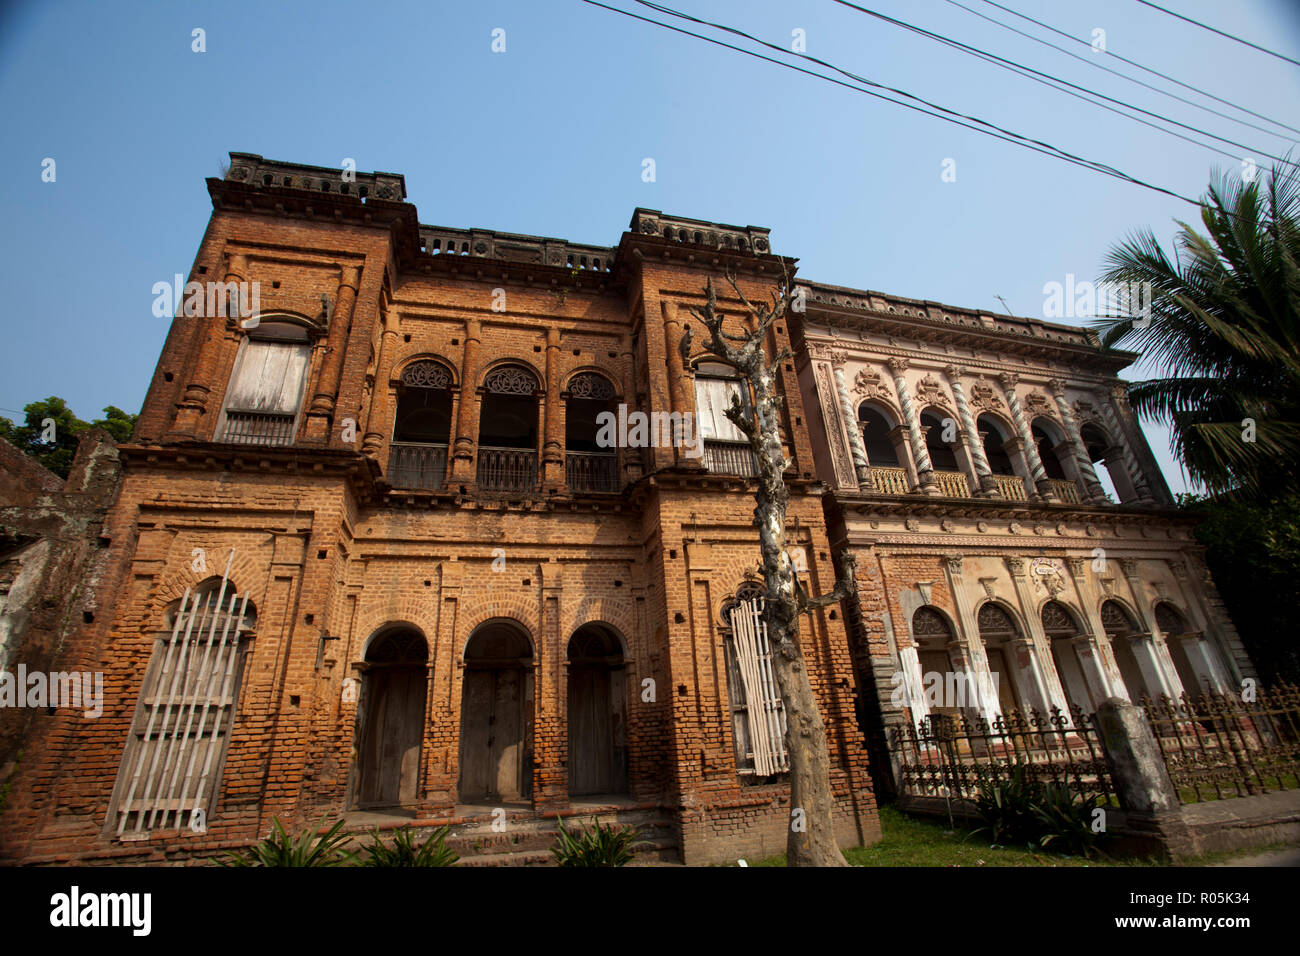 An ancient residential house in Panam City in Sonargaon, was built during the Mughal period in 16th century. Panam City is a unique example of early u - Stock Image